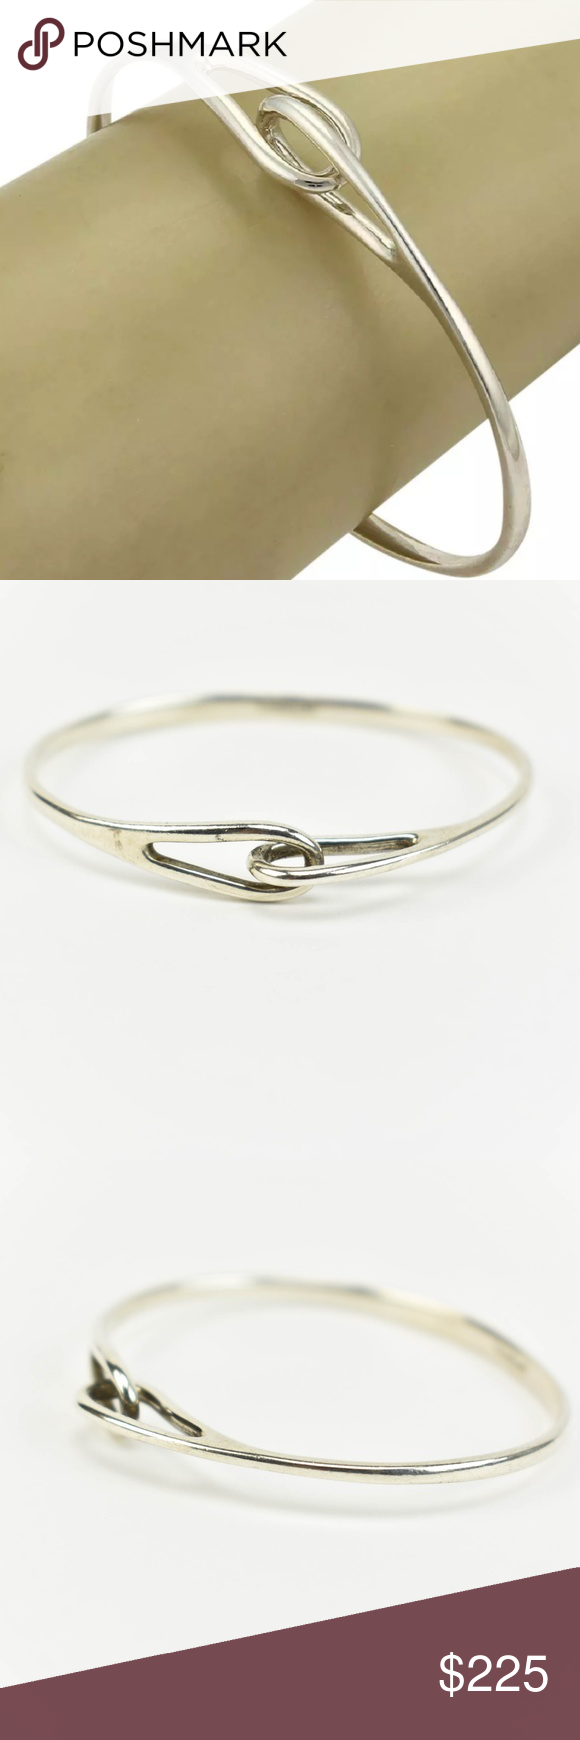 3dc45c7a9 TIFFANY & CO: Sterling Silver